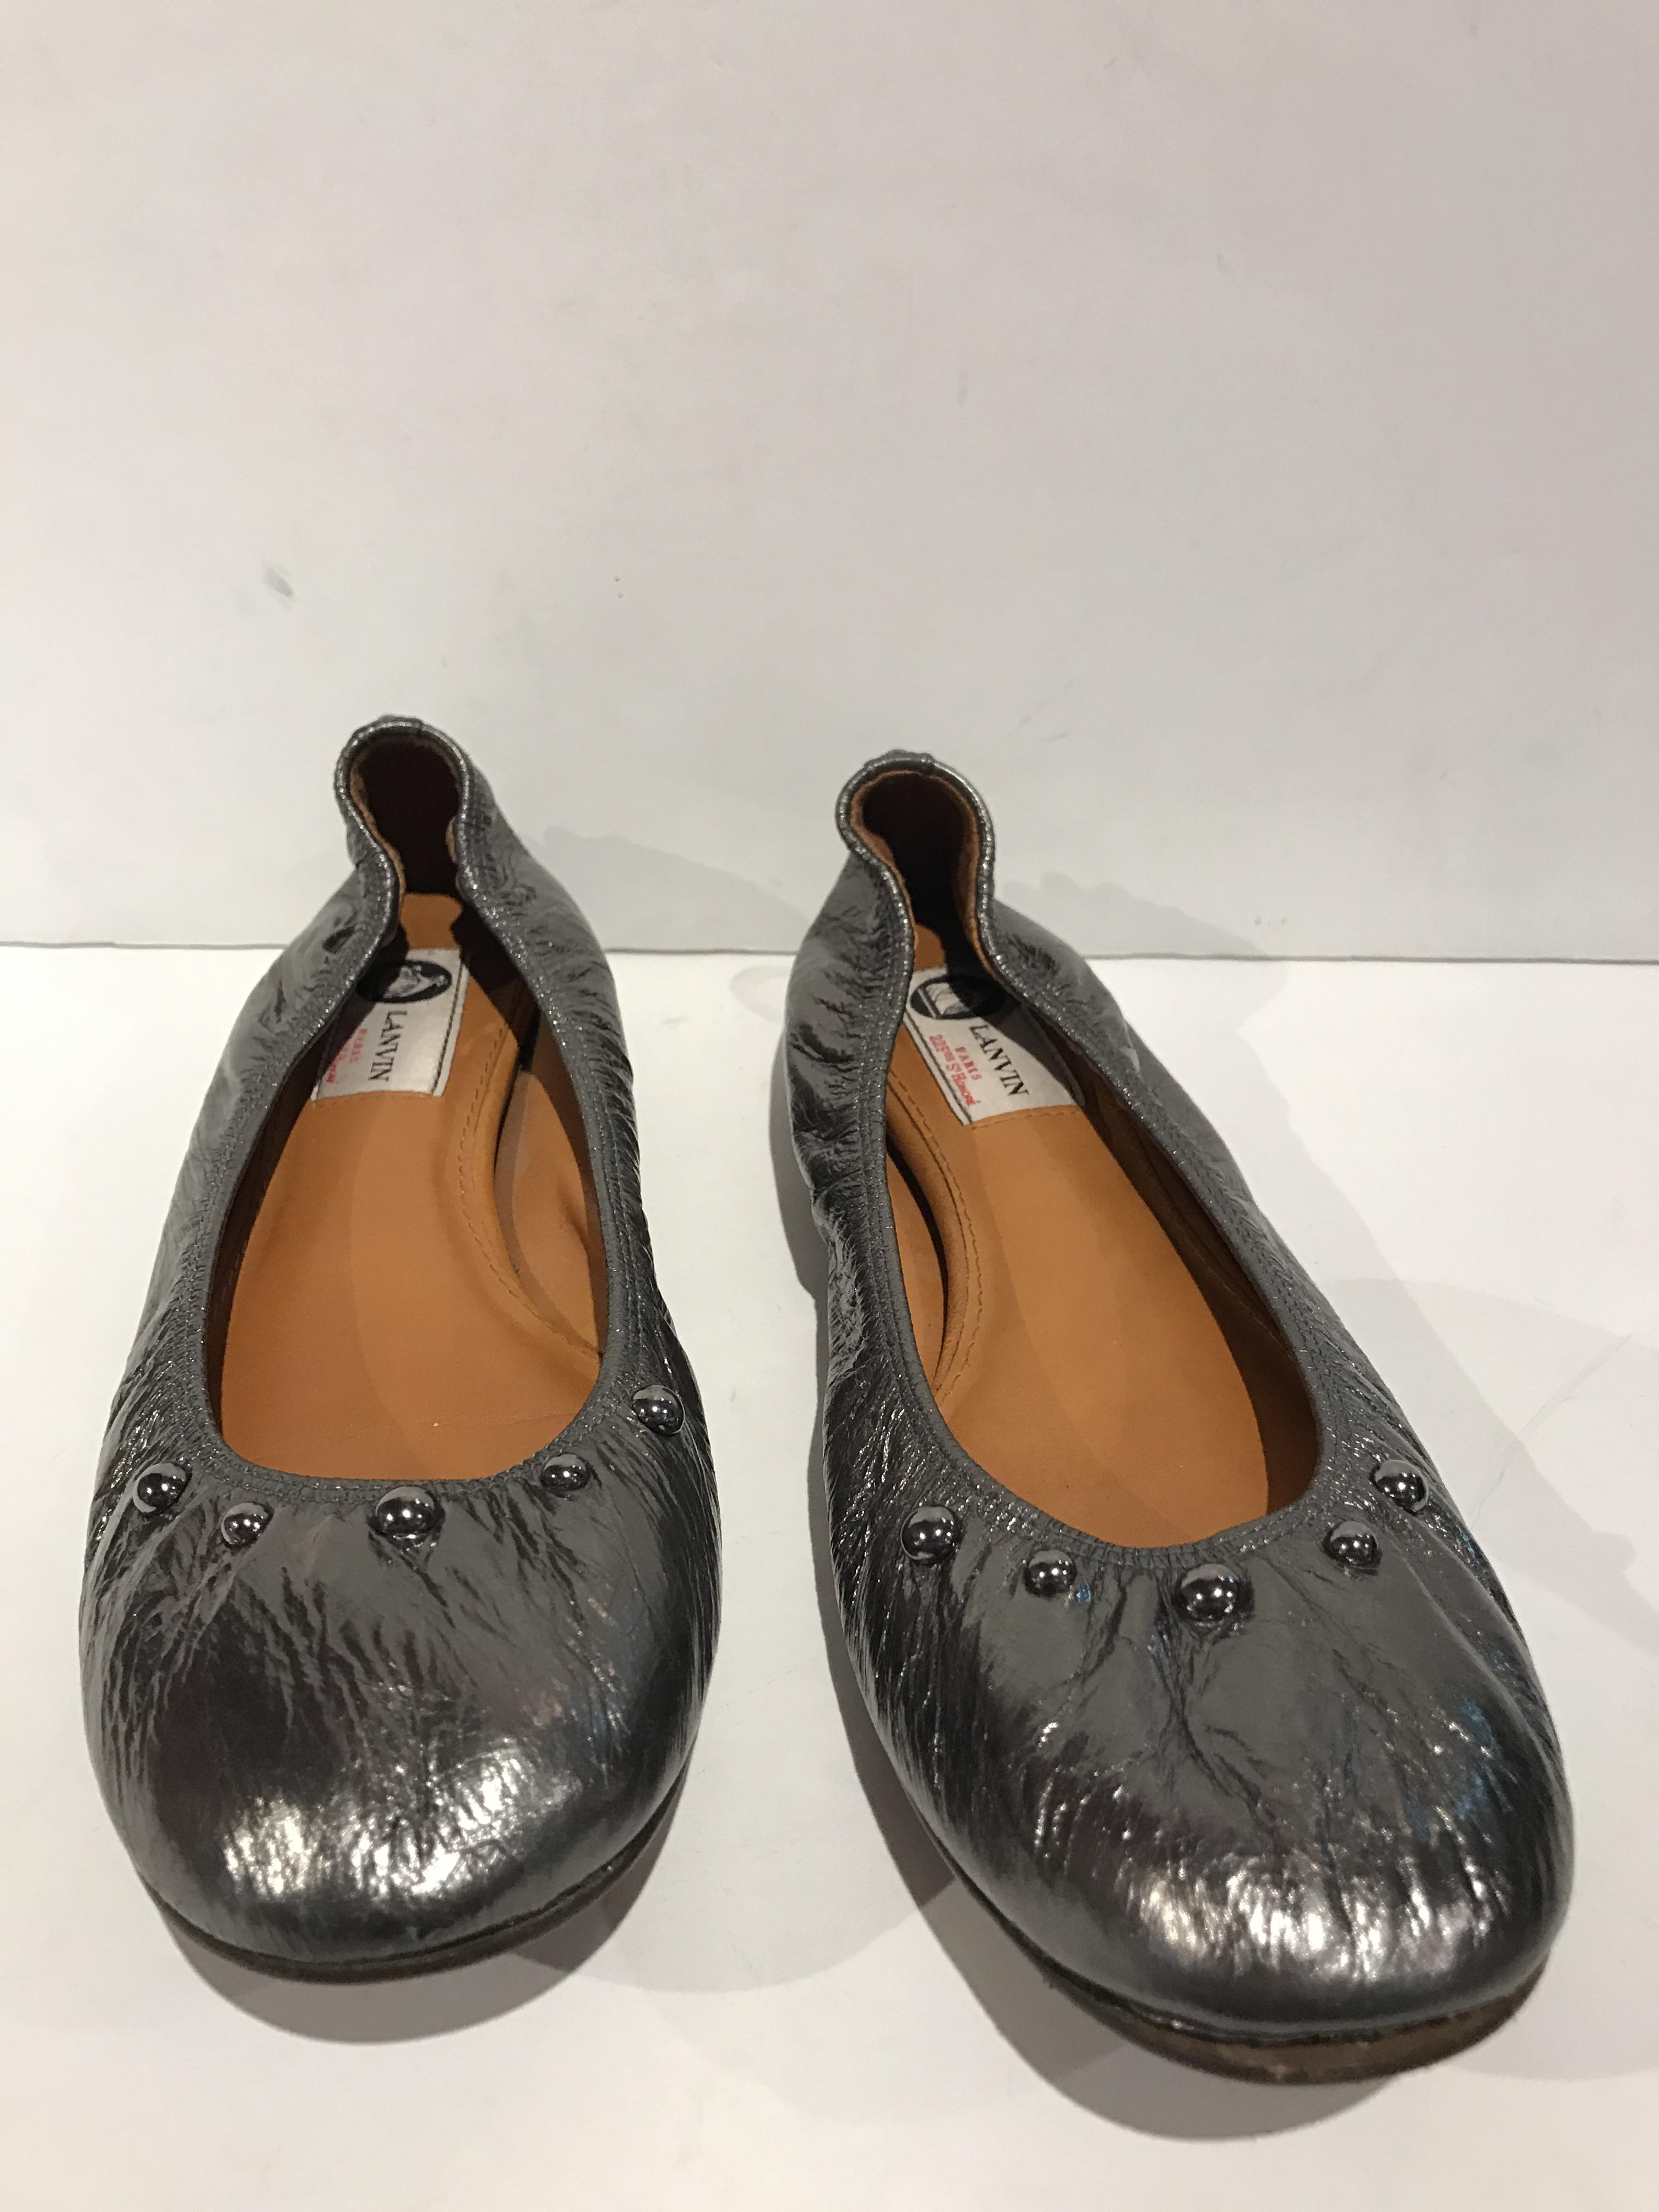 Lanvin Shoes Price: $98.99